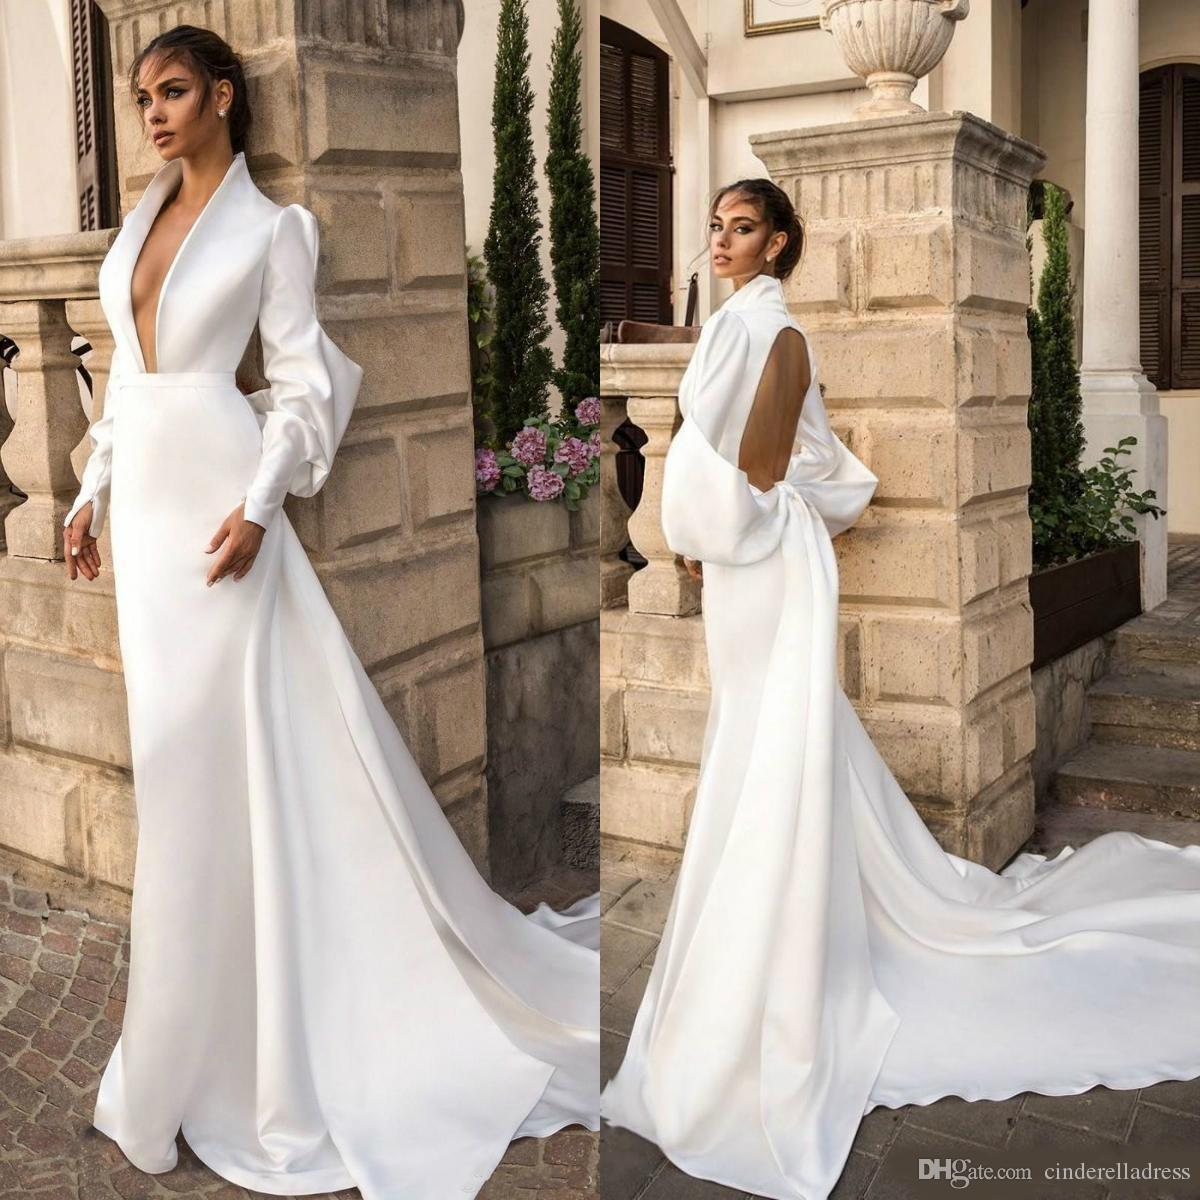 2020 New Country White Satin Mermaid Wedding Dresses Deep V Neck Long Sleeve Garden Sweep Train Plus Size Backless Wedding Bridal Gowns